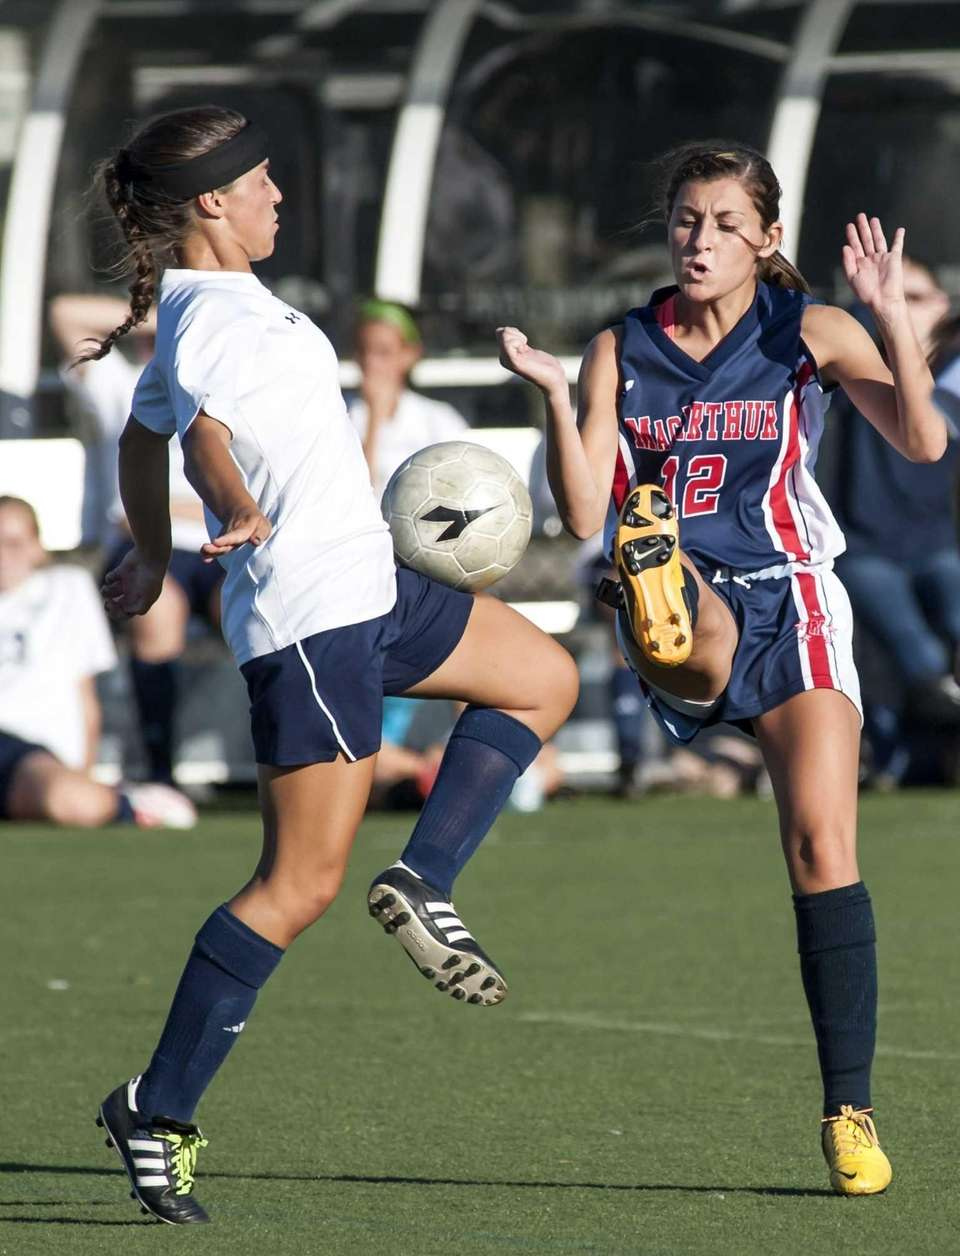 MacArthur's Nicole Greenwald, left, goes after the ball